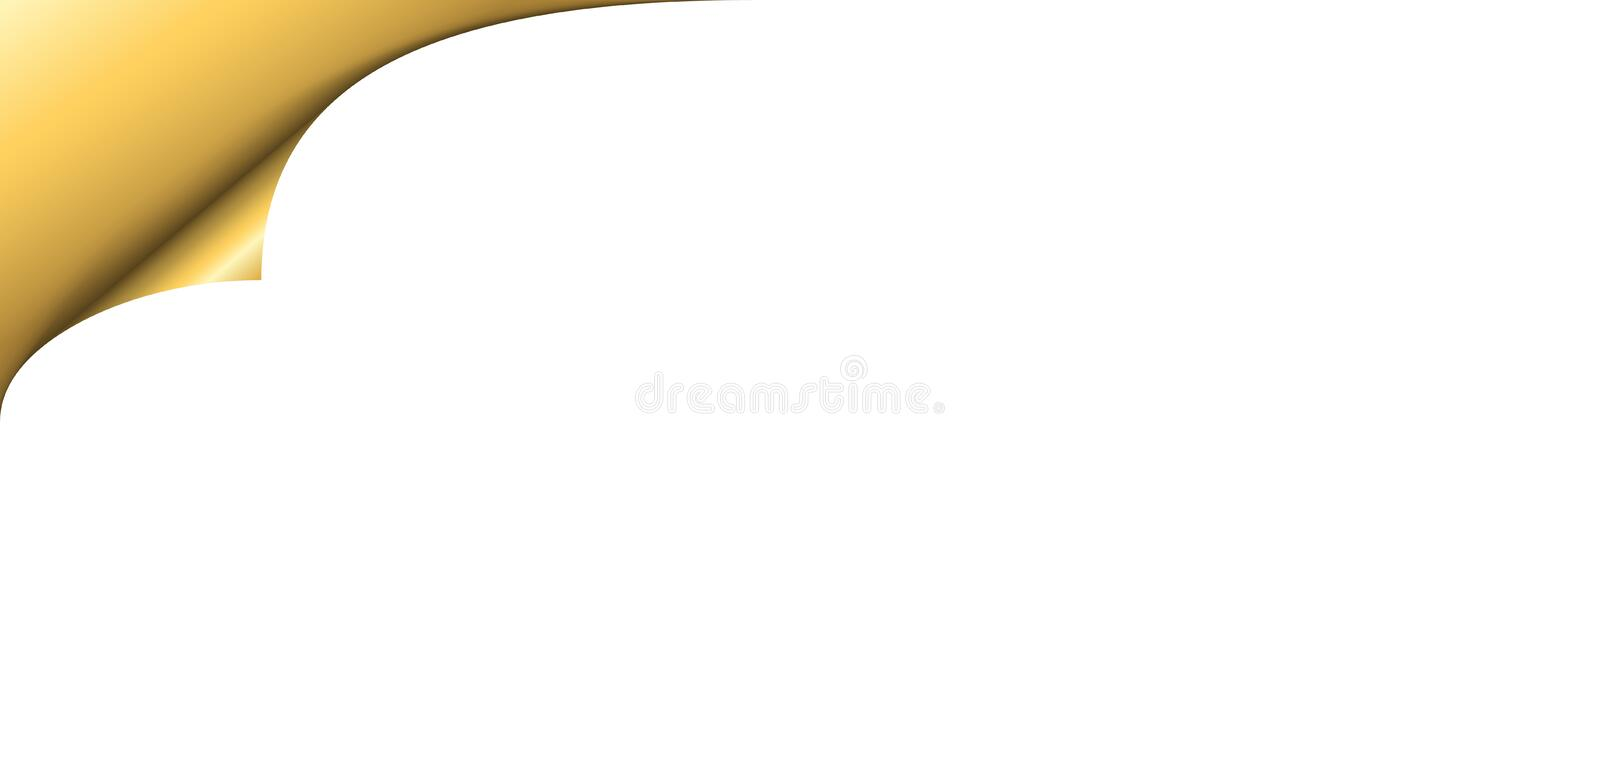 Page corner turn. Gold metallic paper corner with shadow on white background. Golden turn empty sticker. Curl note label. Template curly edge sheet document royalty free illustration